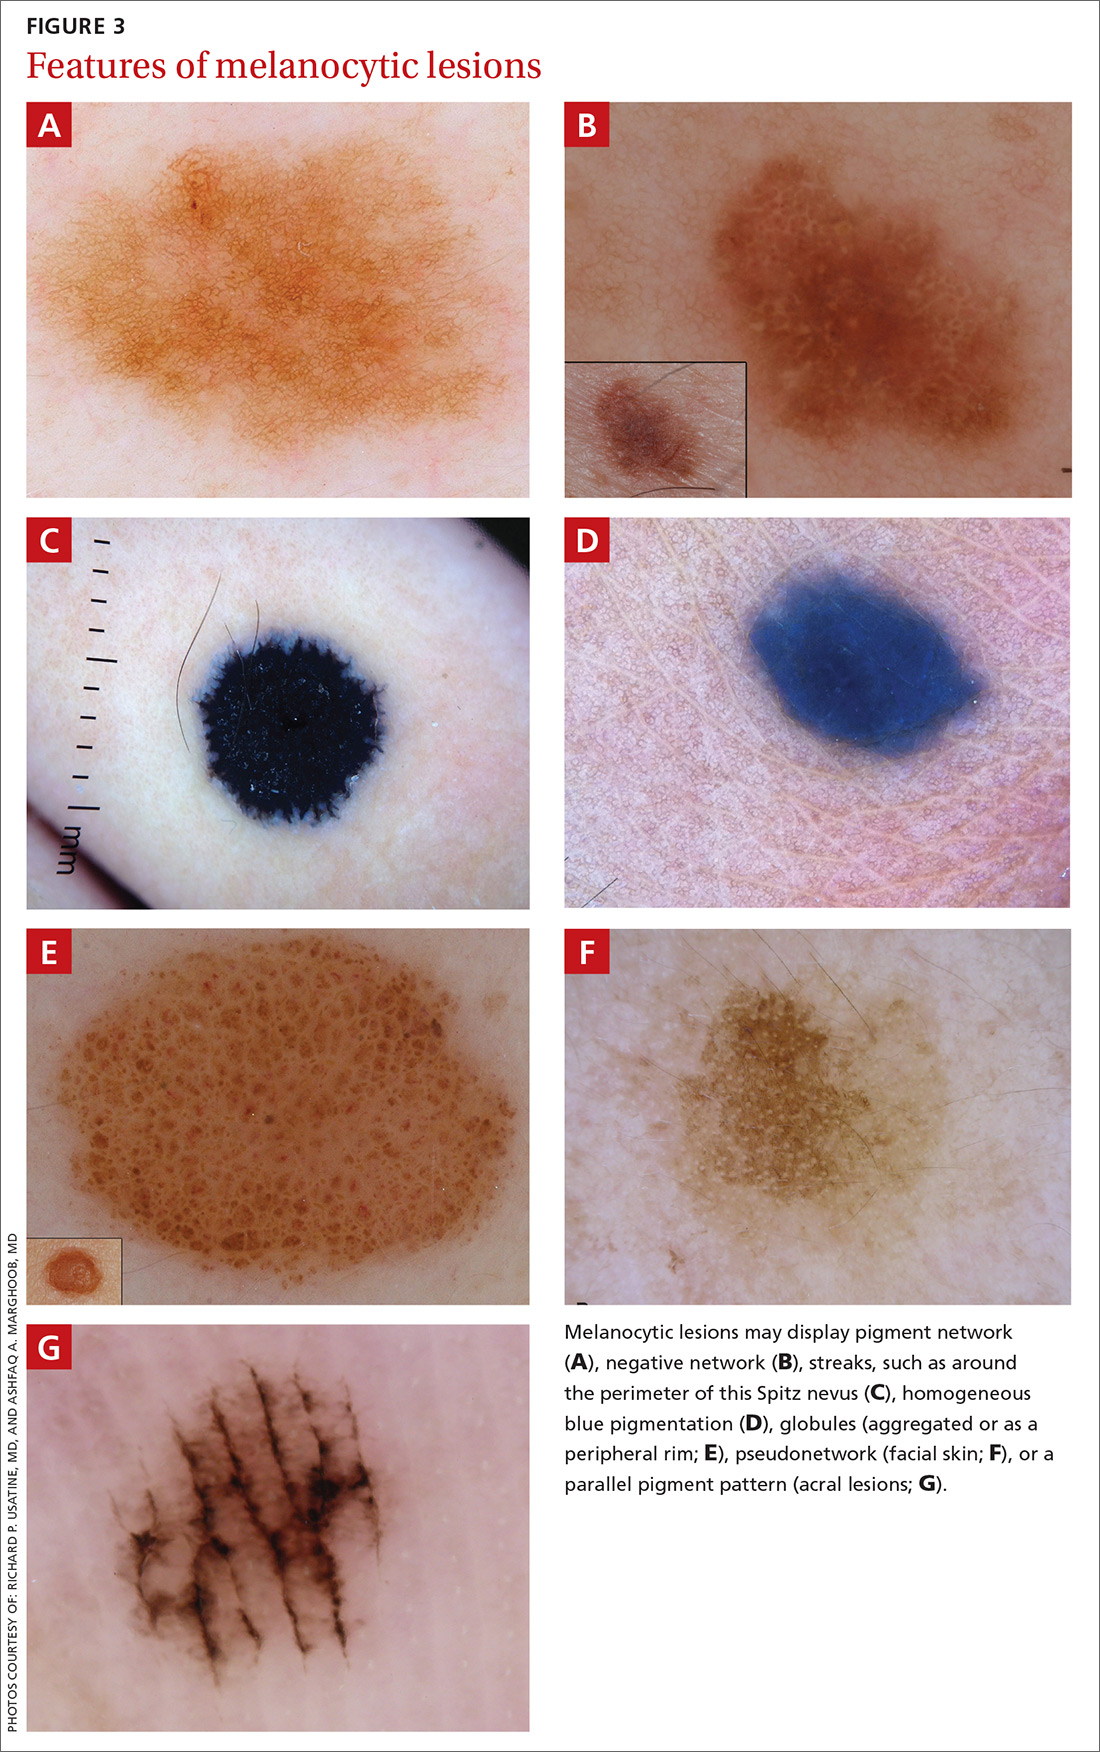 Features of melanocytic lesions